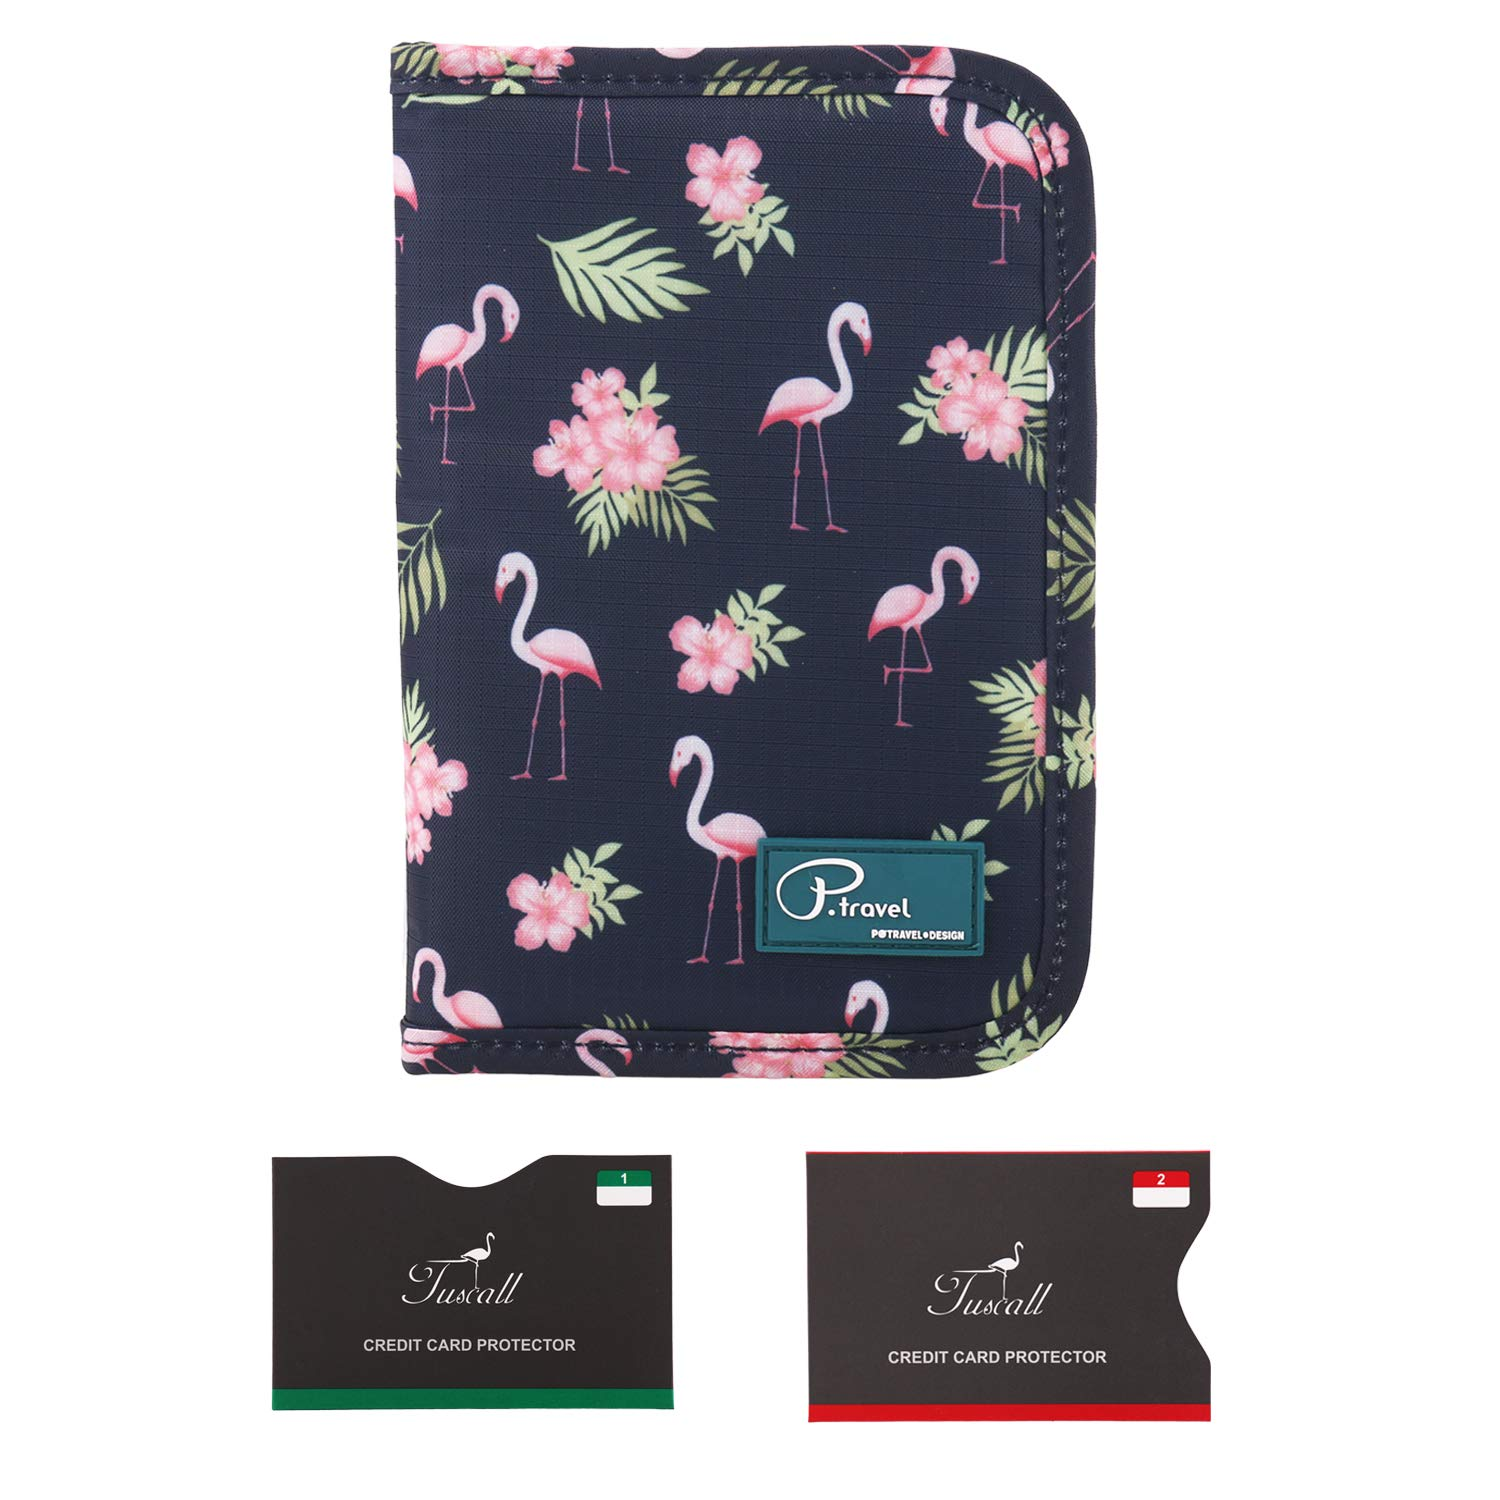 Tuscall Travel Wallet